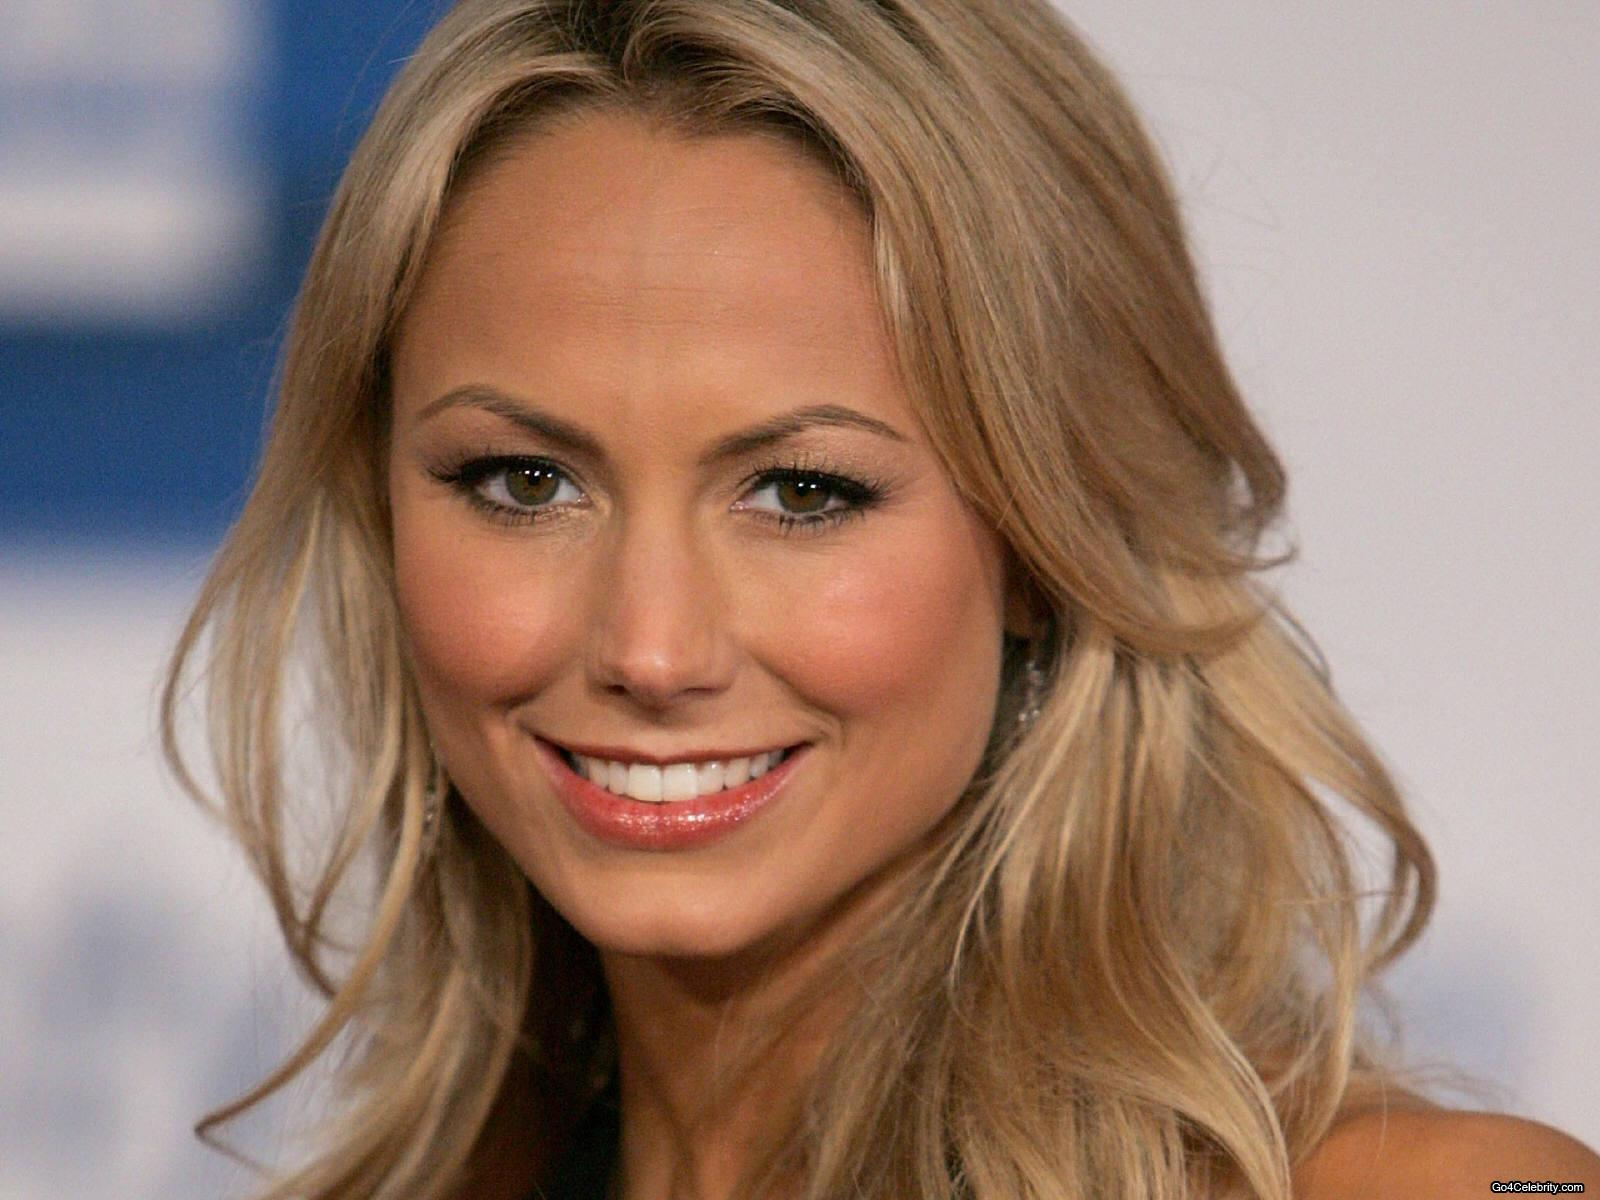 Stacy Keibler Family, Husband Name, Age, Weight, Height, Father